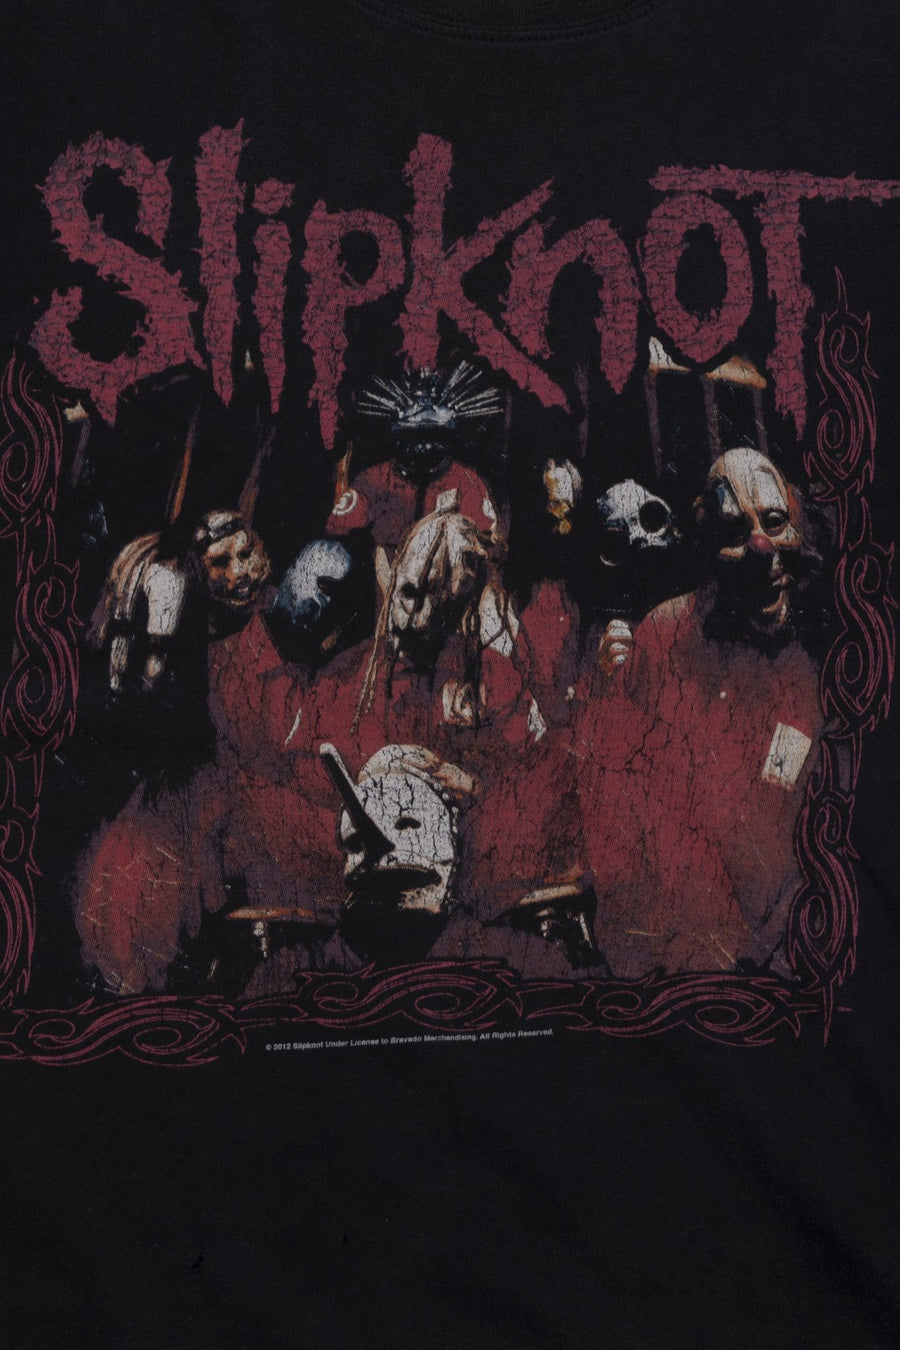 T-shirt Slipknot - WASTED PARIS